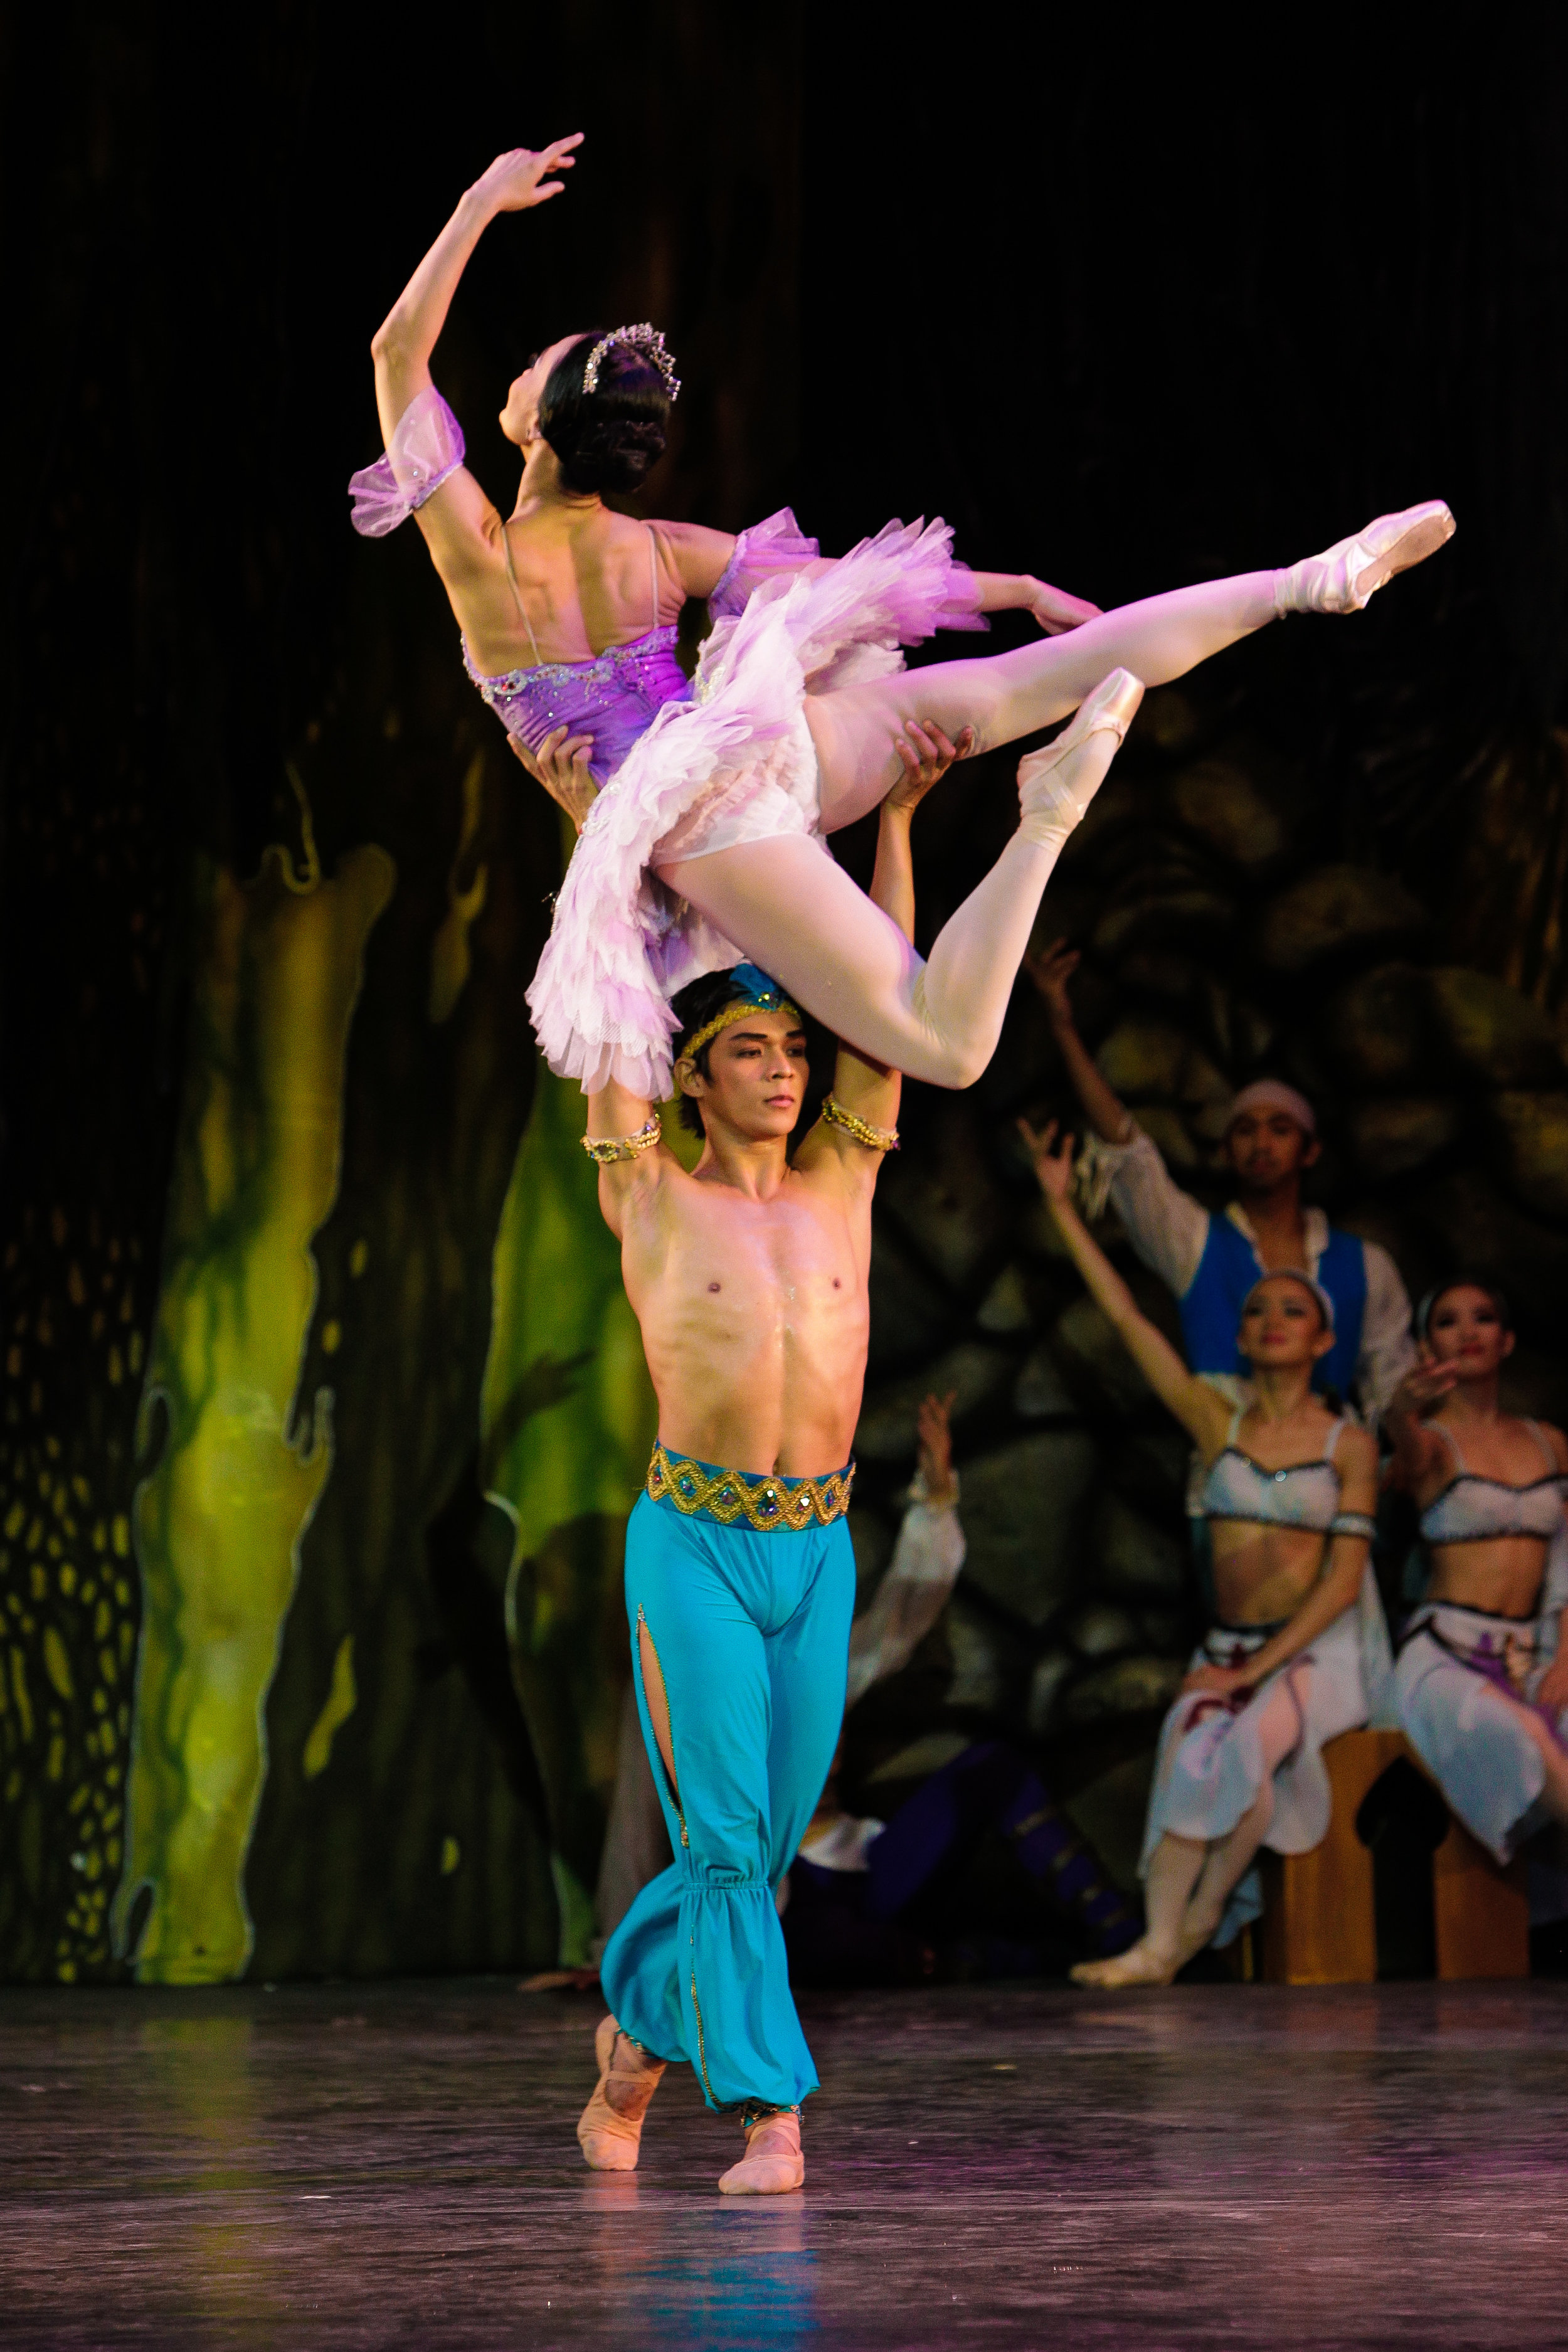 In 2013, Geri as Ali partnered Lisa Macuja-Elizalde's Medora in the prima ballerina's farewell performances of  Le Corsaire  featured in her Swan Song Series. Photo by Jojo Mamangun